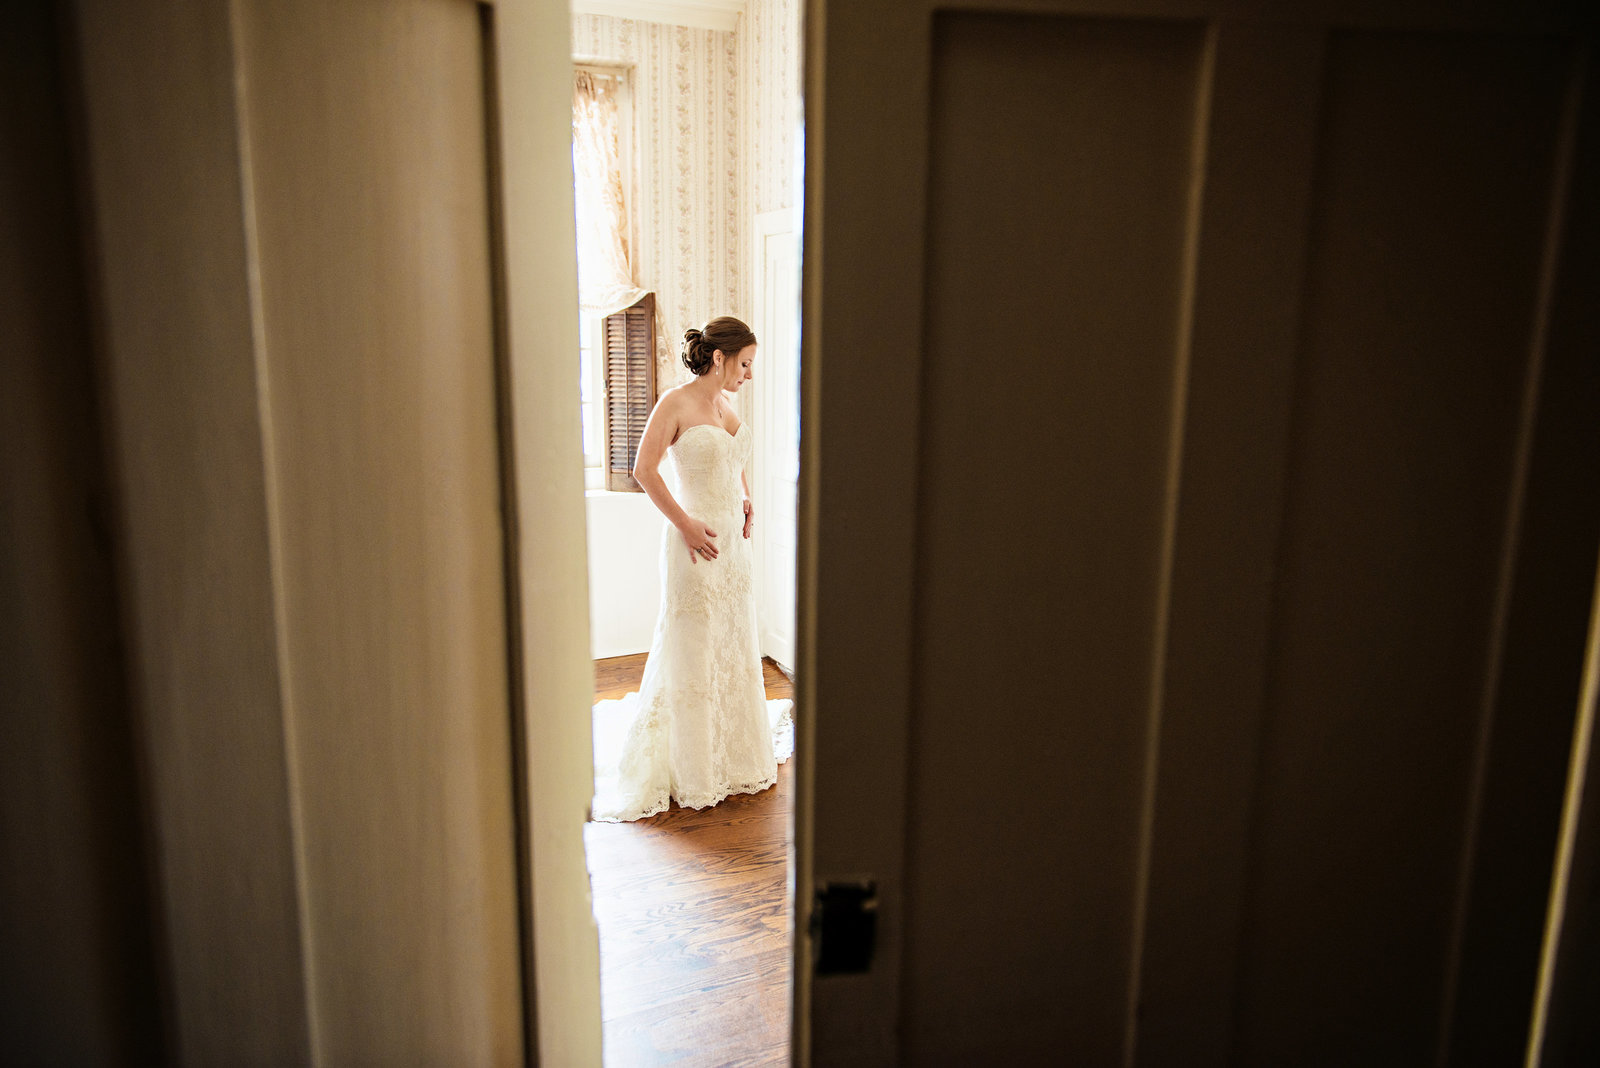 A peak through the door of a bride getting ready for her wedding at the Rosebank Winery.